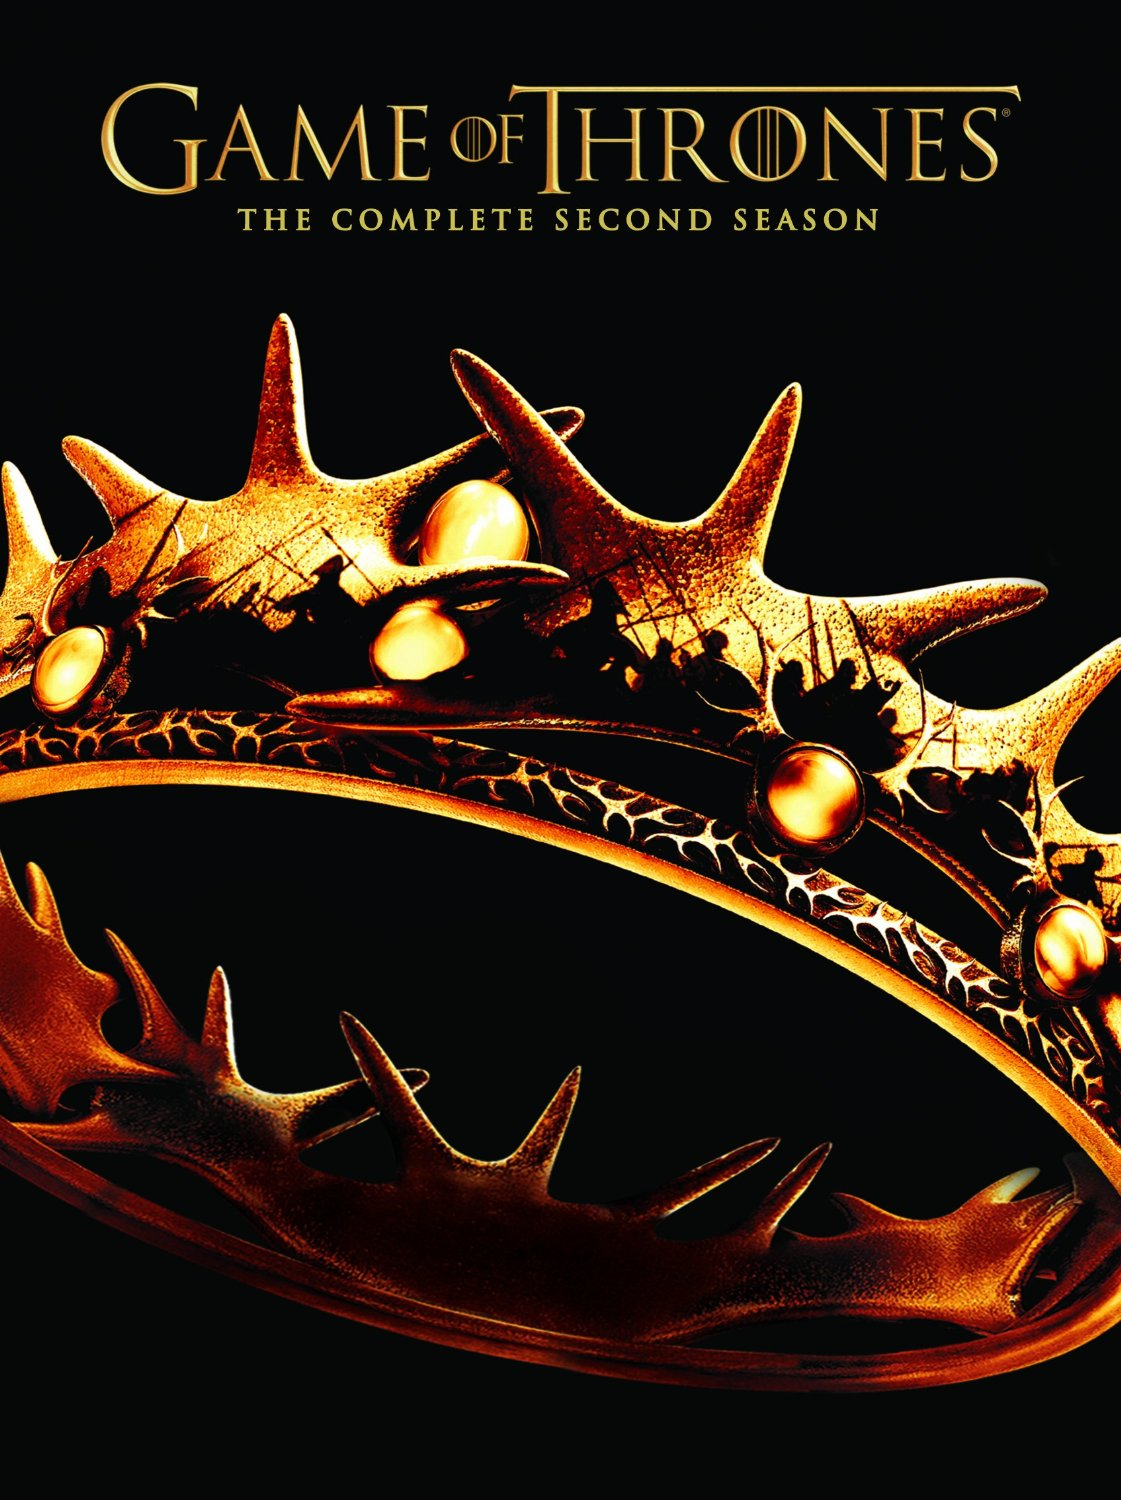 Contest – Win Game Of Thrones Season 2 On DVD